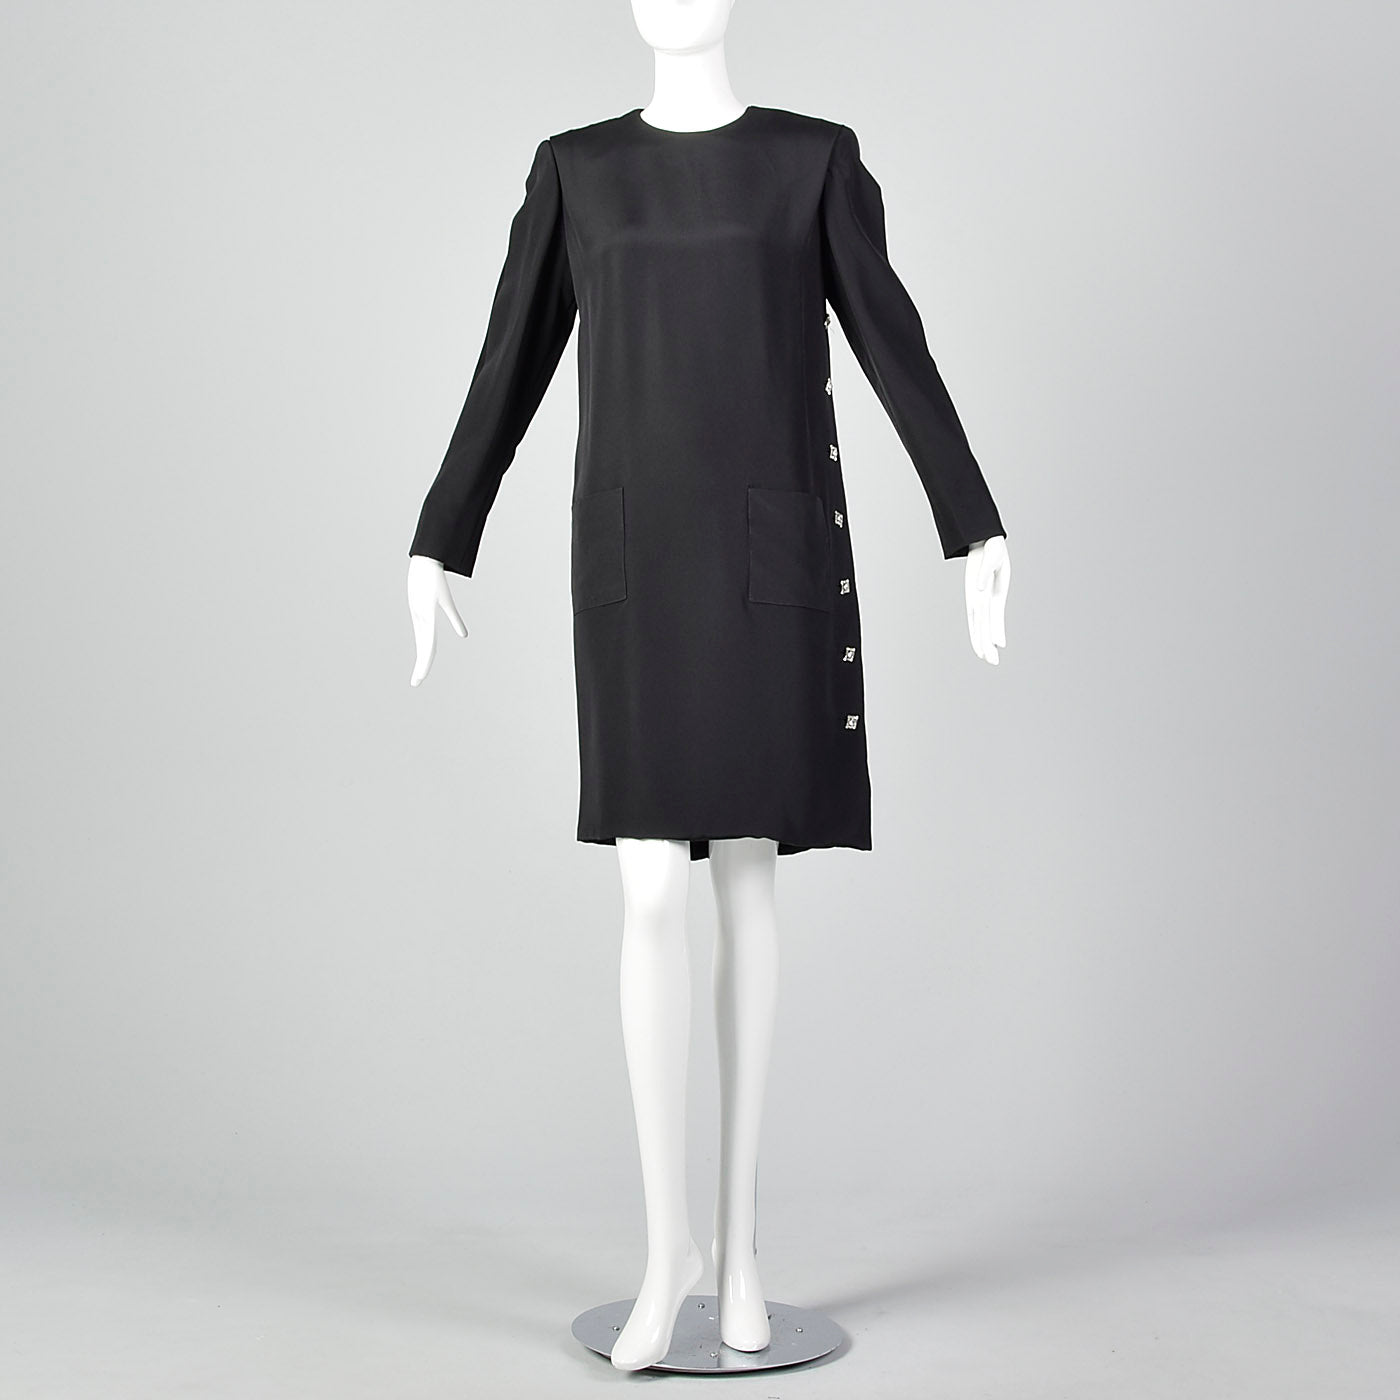 1980s Michael Novarese Black Dress